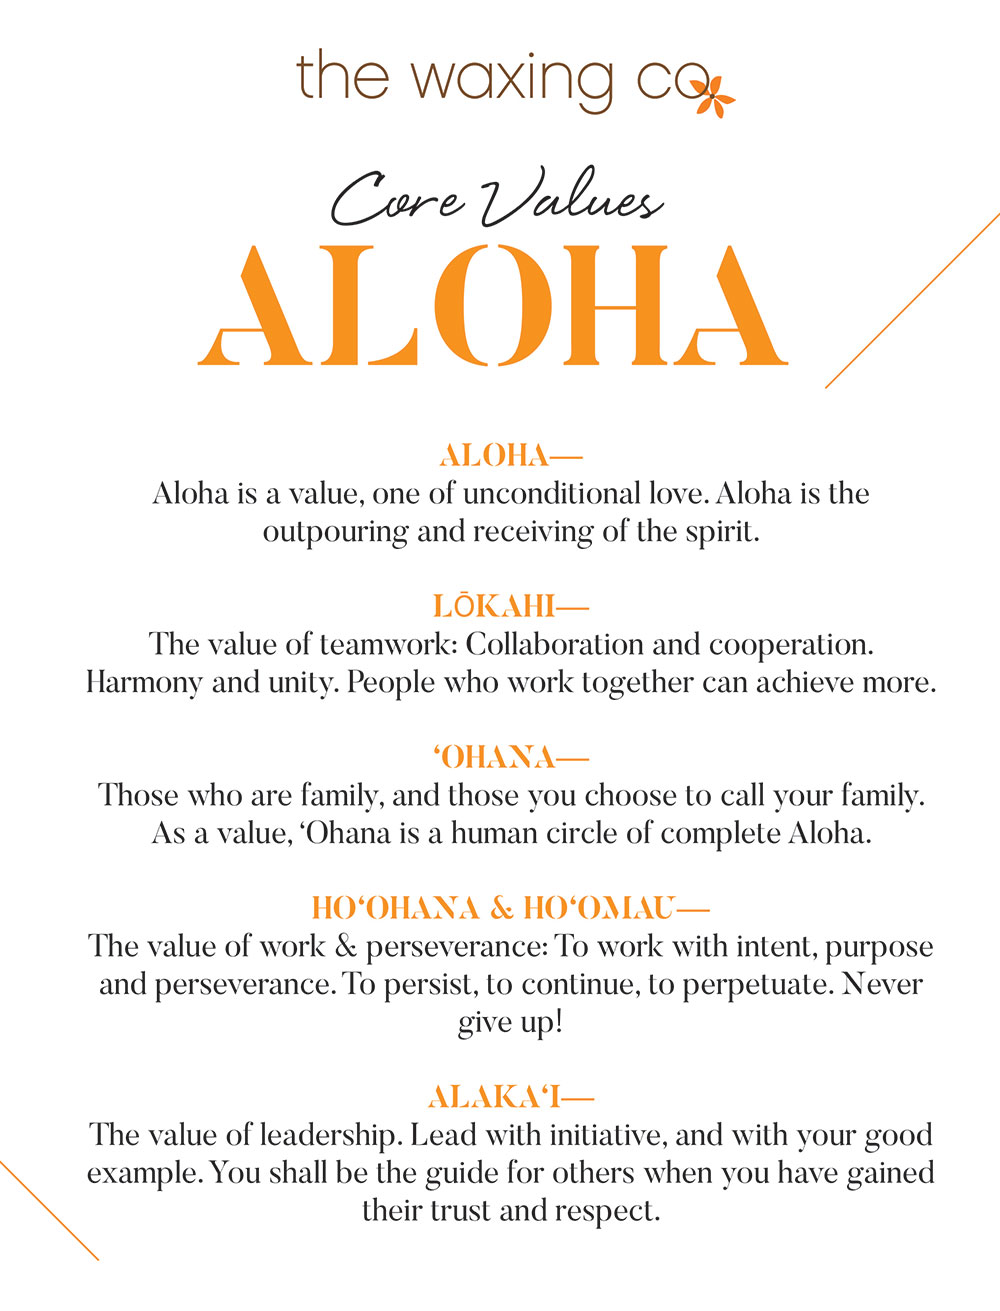 The waxing co core values for the waxing company